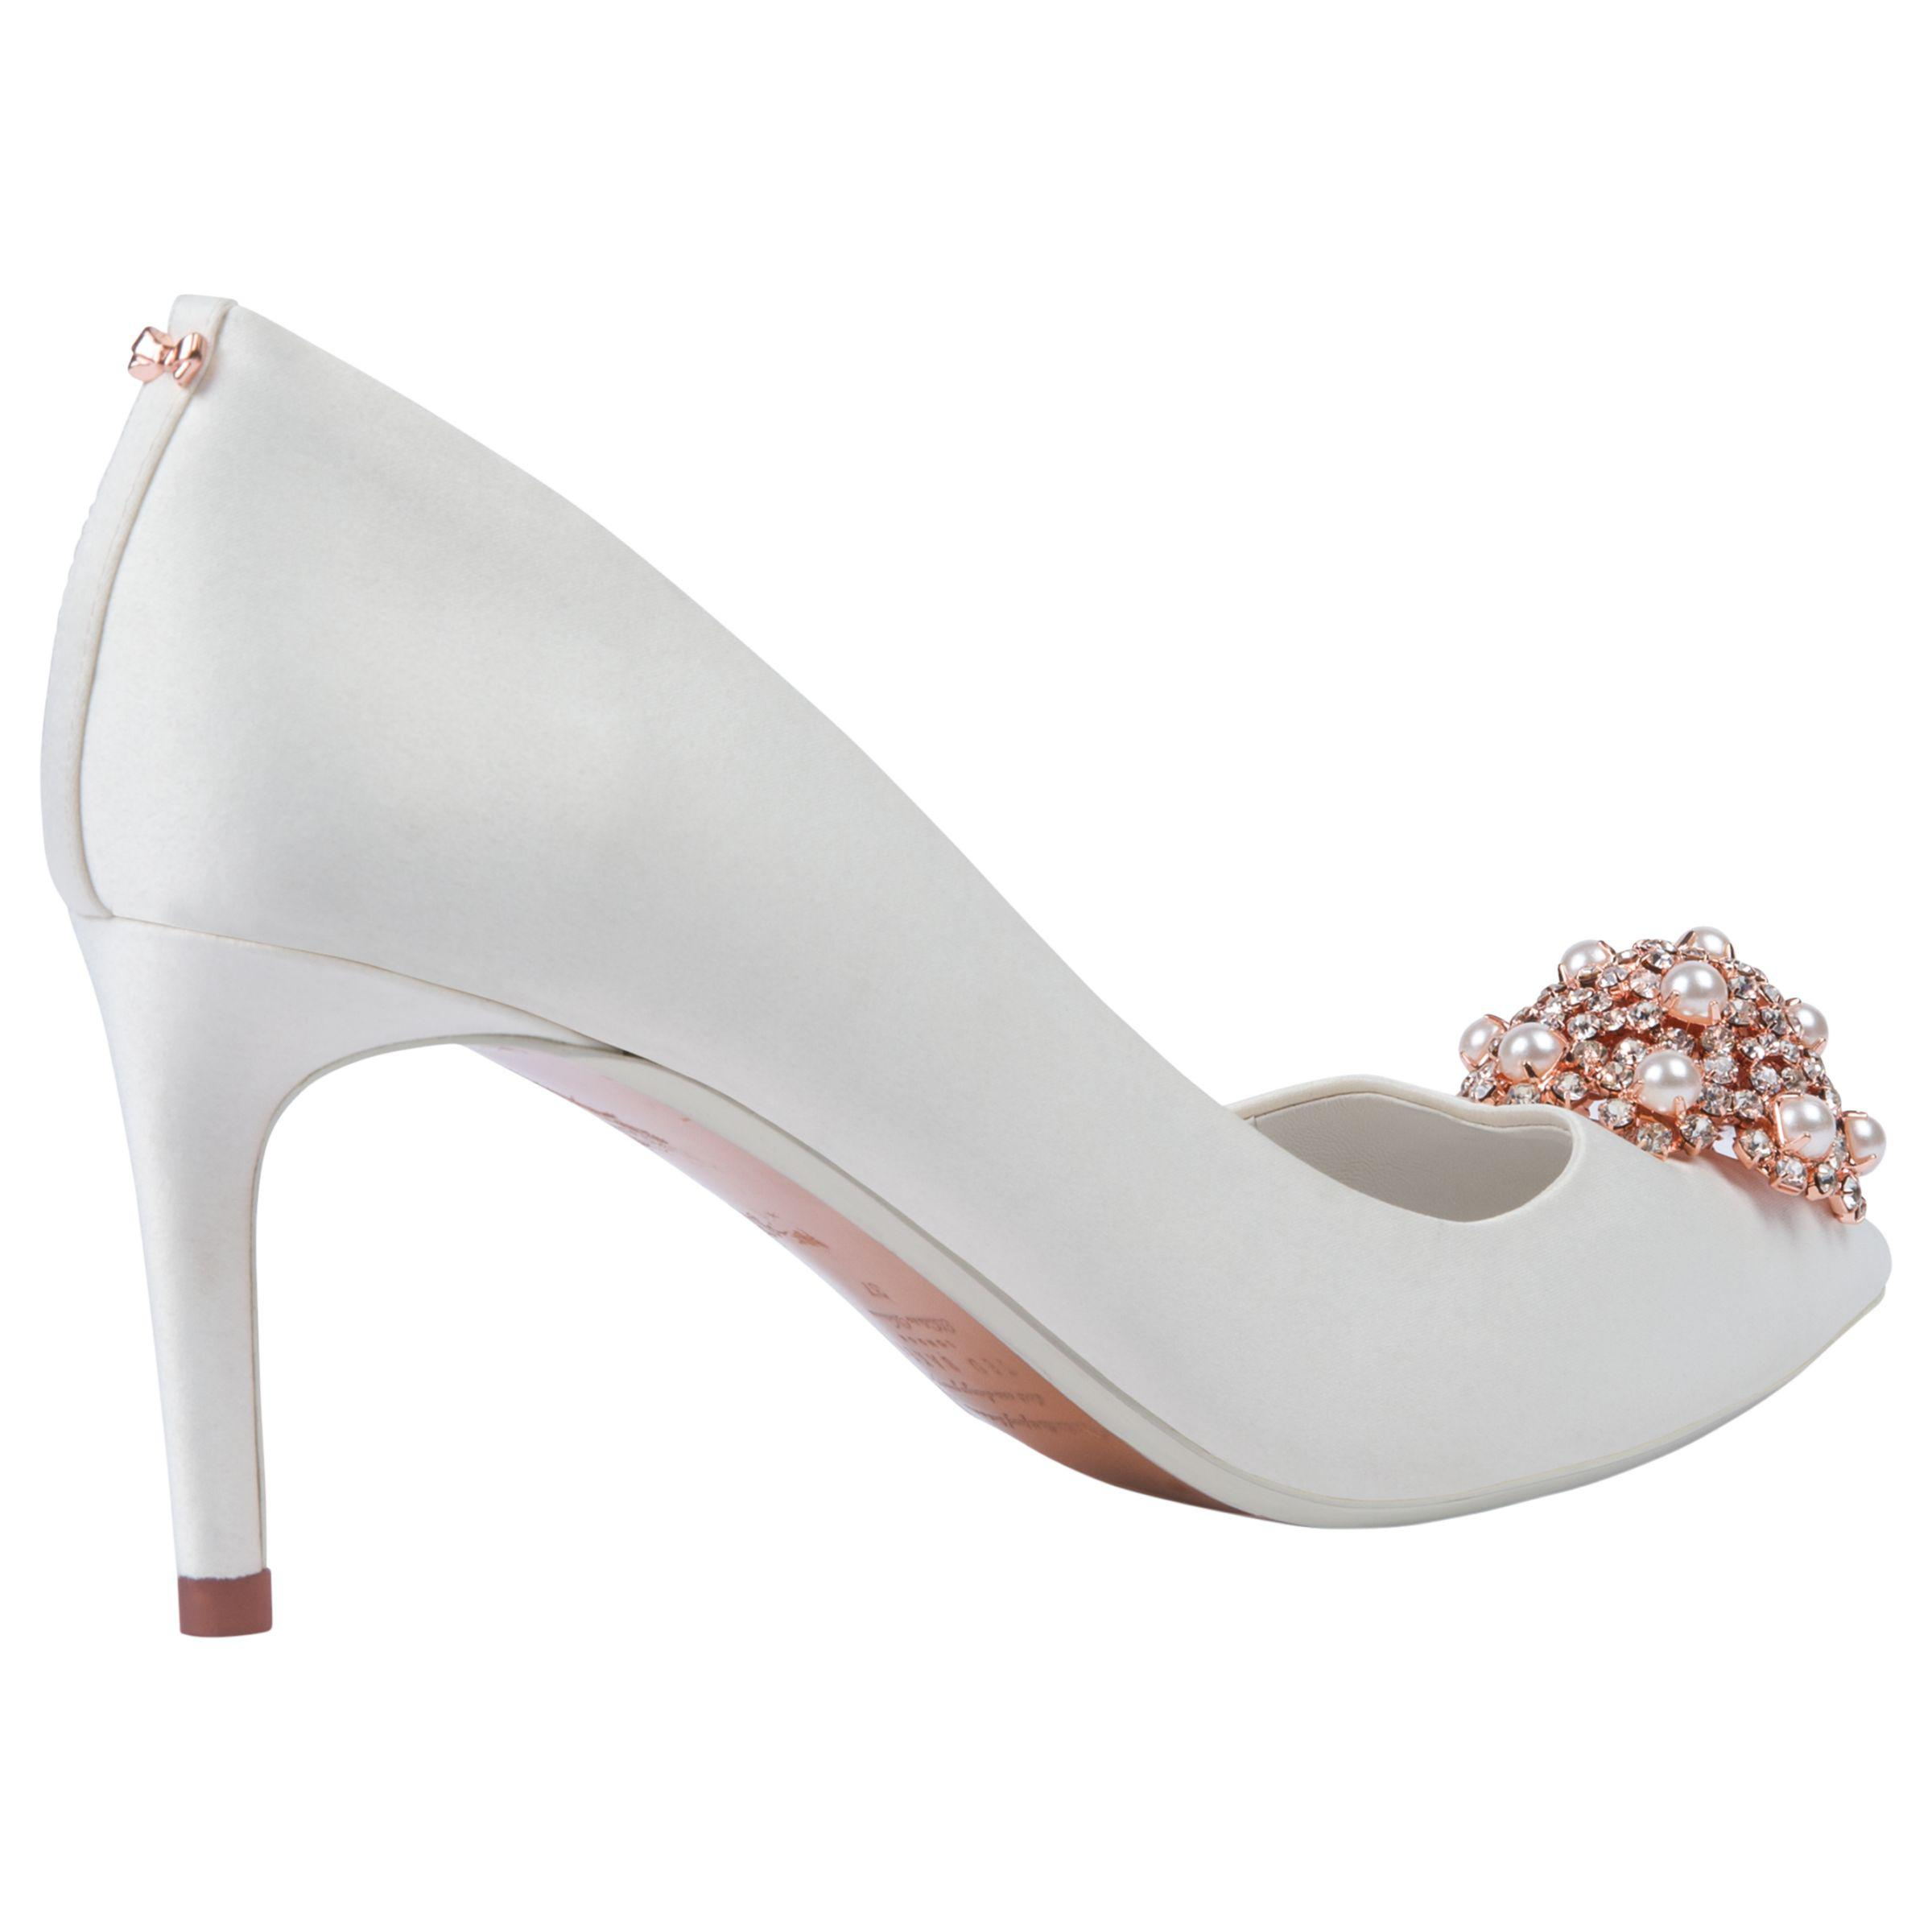 9a0c4a4775a Ted Baker - White Dahrlin Embellished Court Shoes - Lyst. View fullscreen